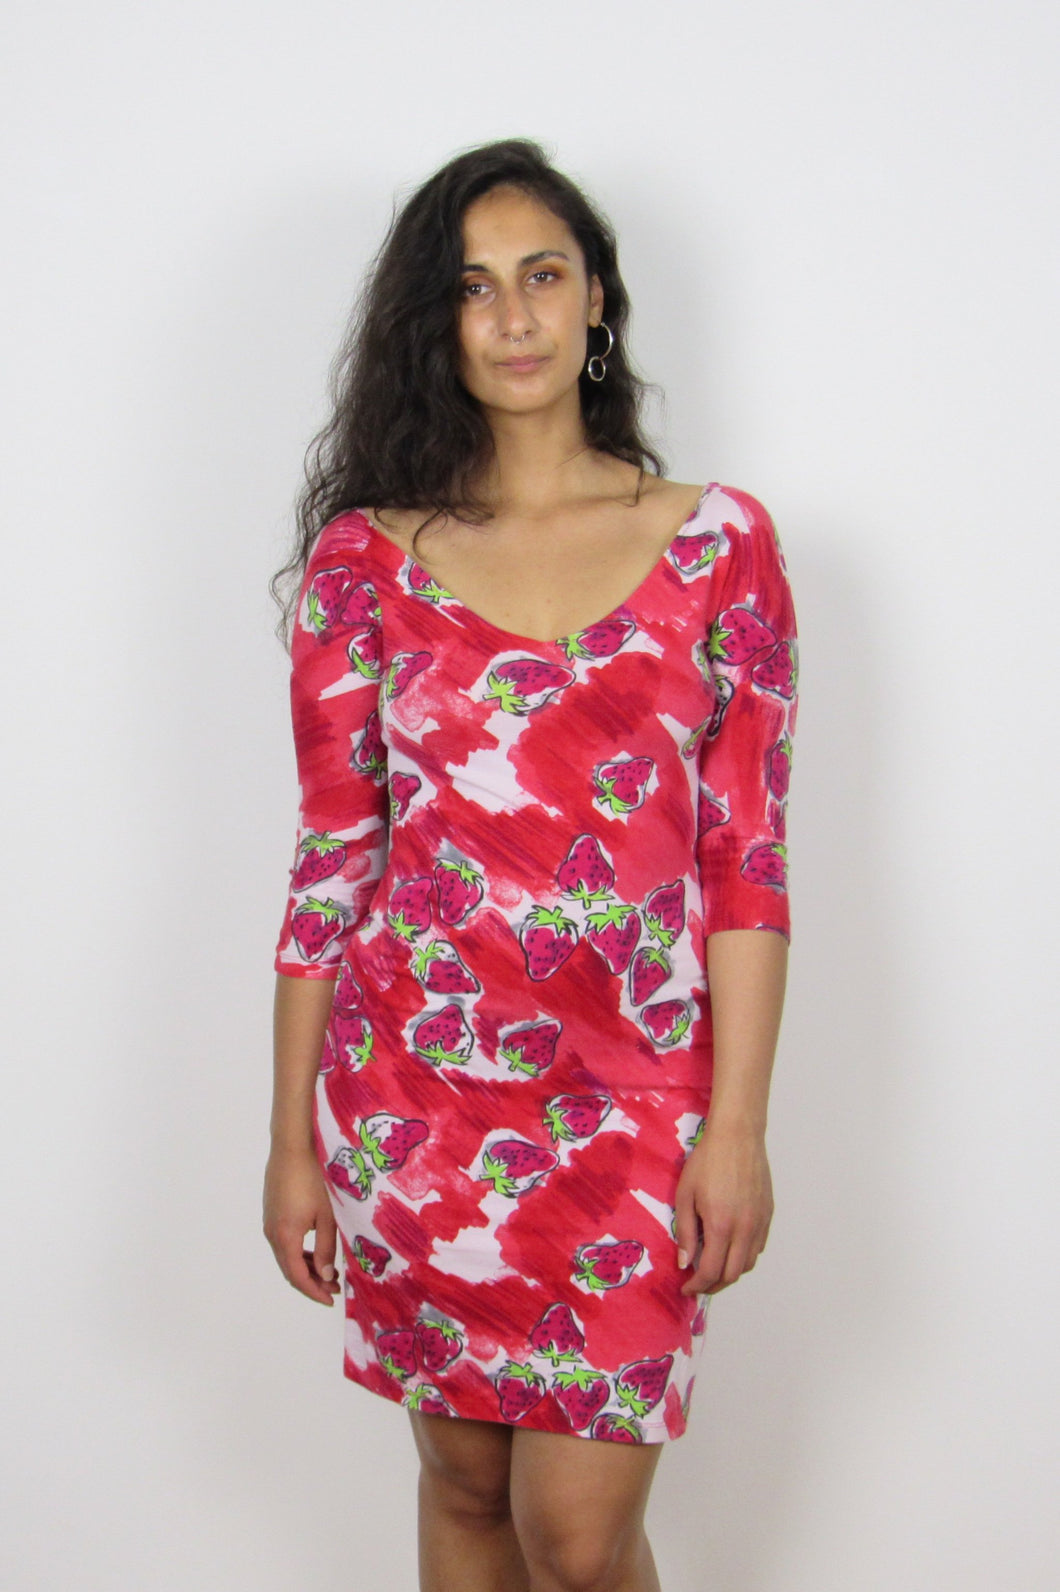 Strawberry Print 90's Dress